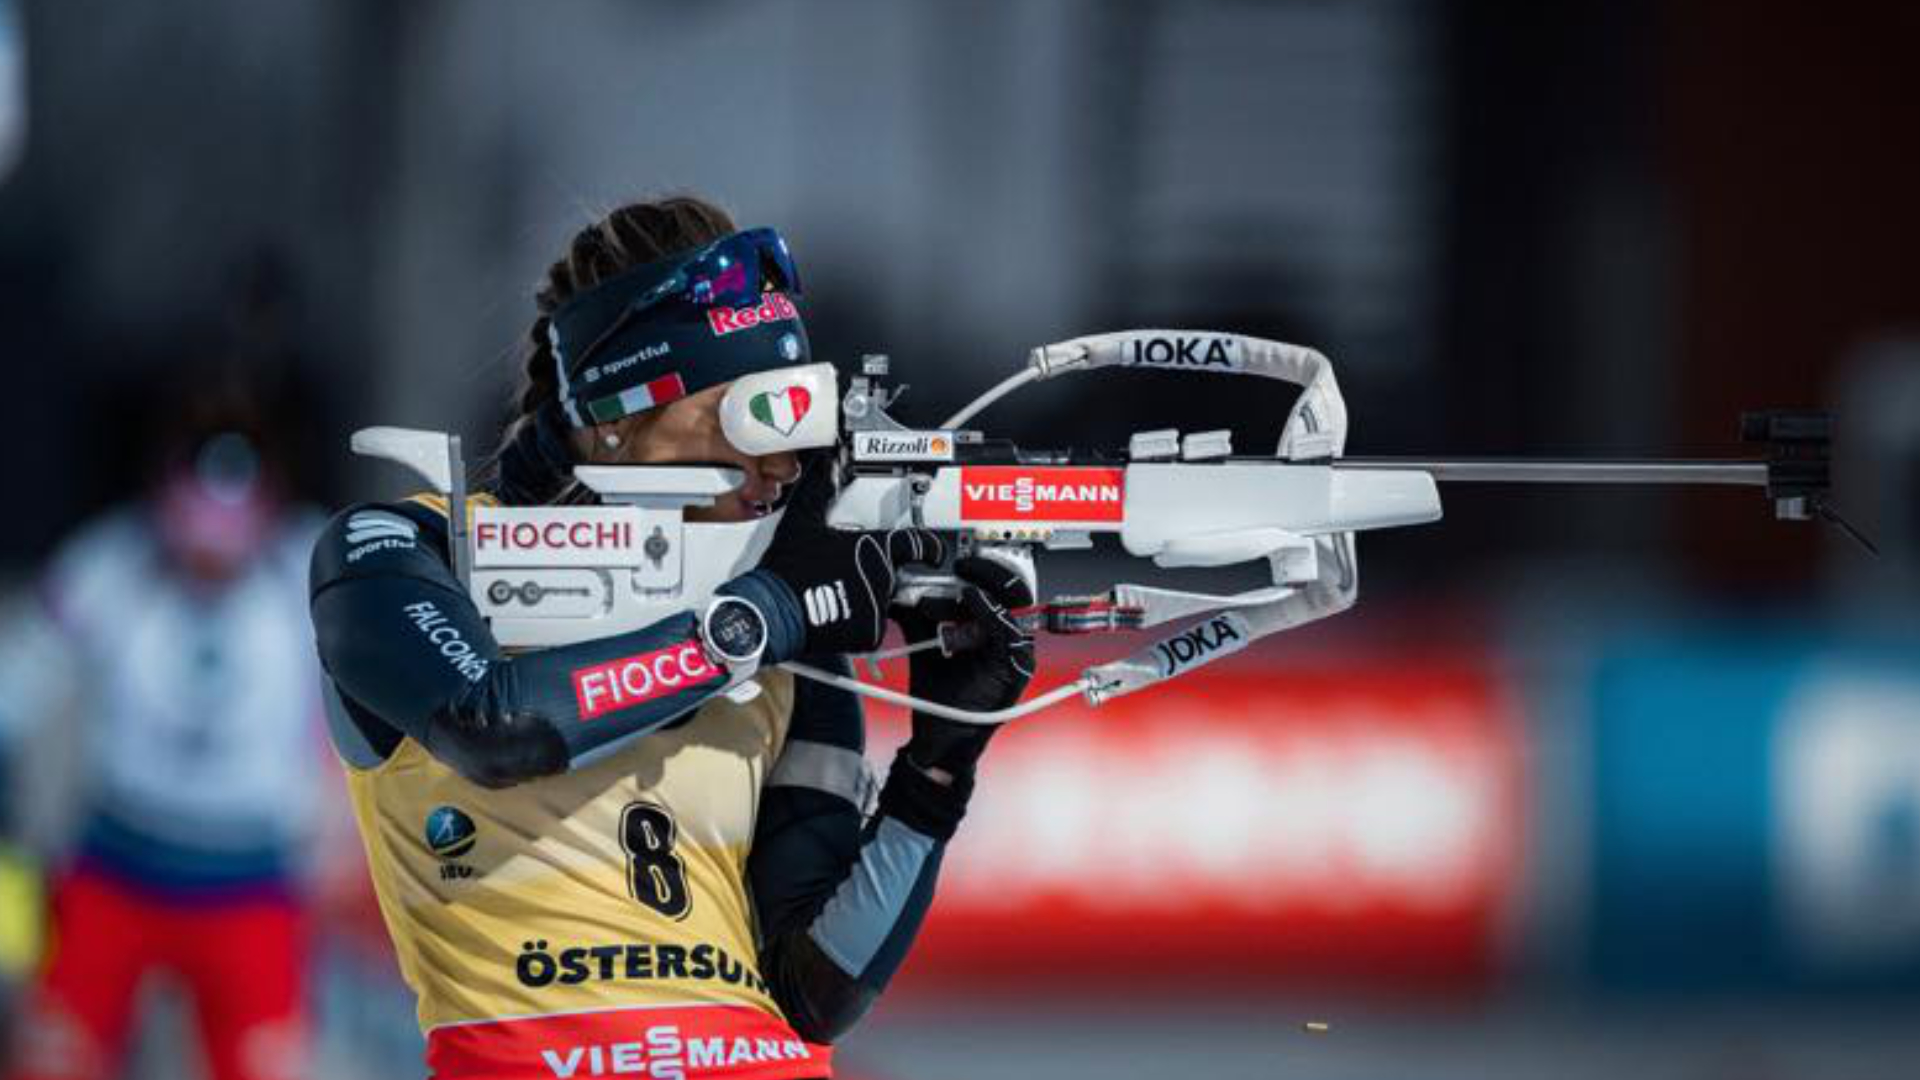 BIATHLON. START WITH A BANG IN OESTERSUND